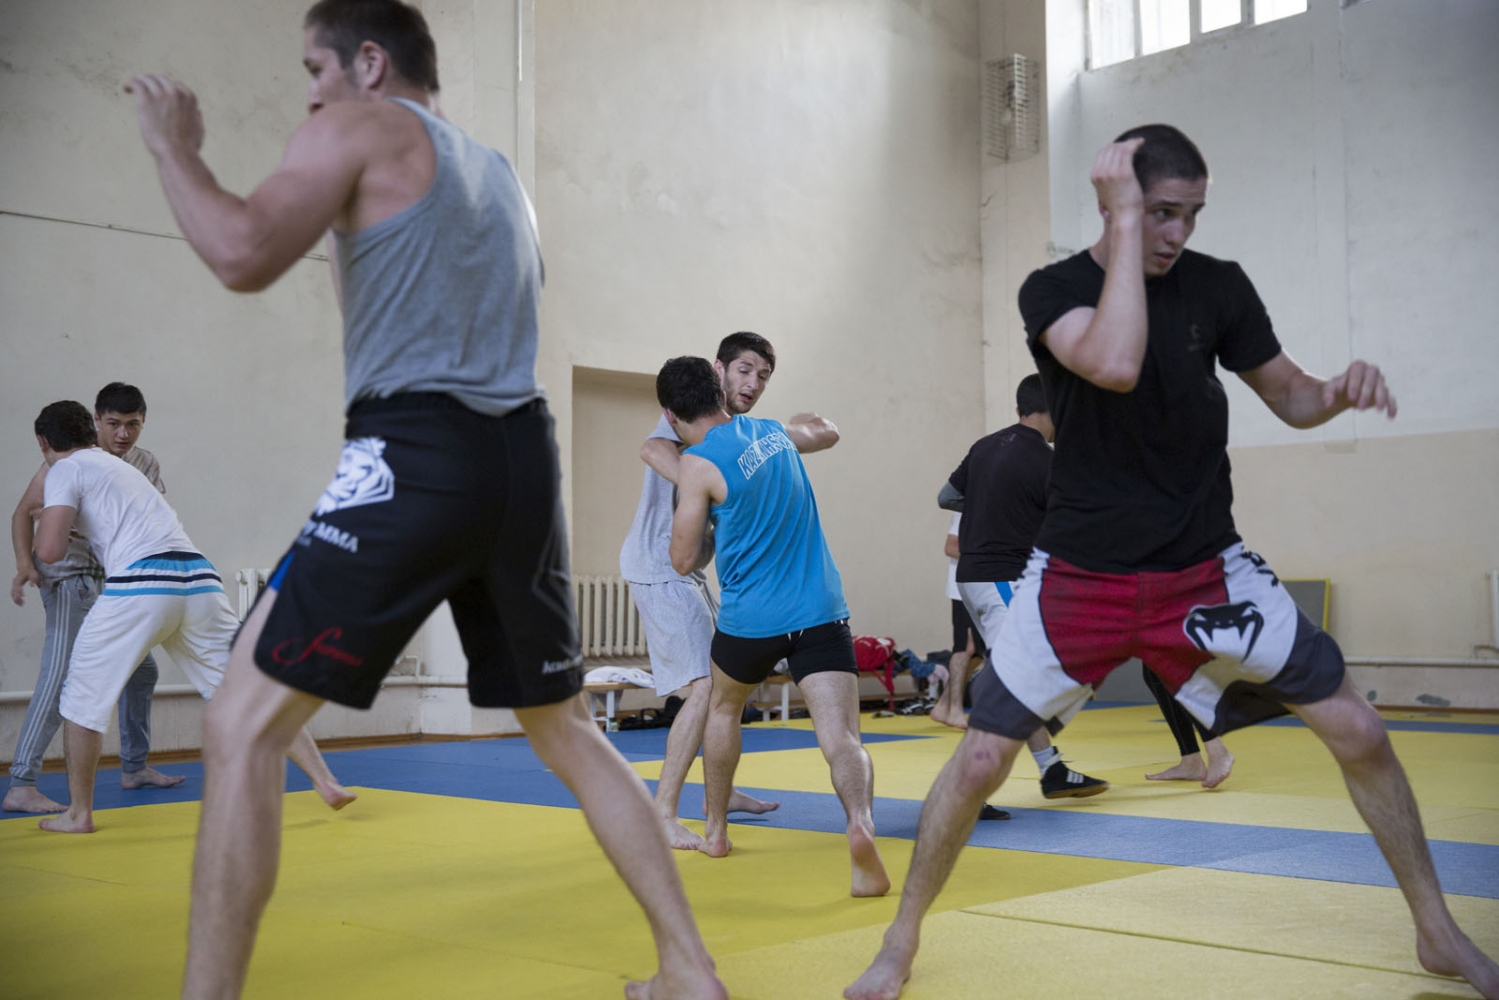 Young fighters train inside a gym in Makhachkala. Fighting is embedded in to the culture of Dagestan and it is renowned around the world for producing large numbers of great fighters from wrestlers to mixed martial arts. The Russian government in Moscow also sends large amounts of funding to help train such fighters.